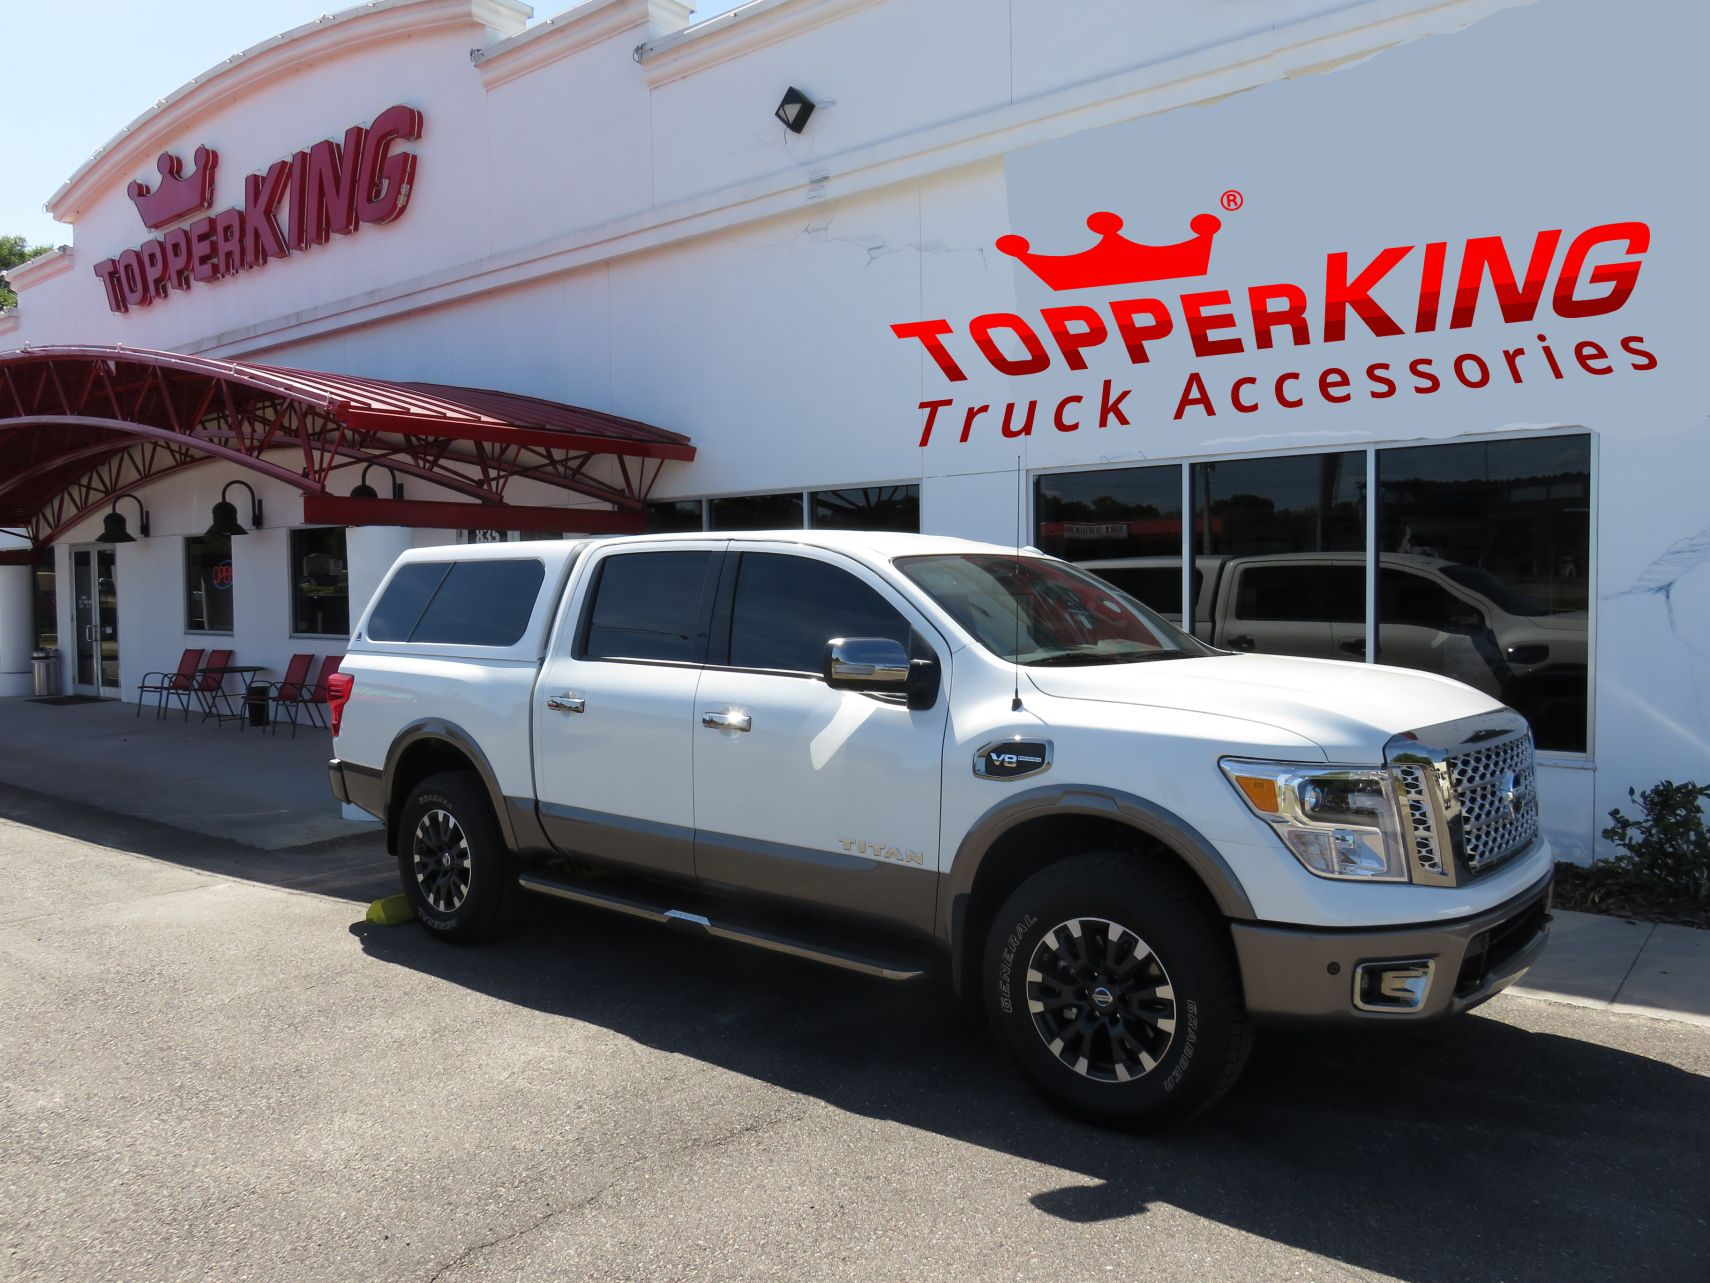 Nissan Titan with LEER 100XL, side steps, chrome accessories, and custom hitch by TopperKING in Brandon, FL 813-689-2449 Call today to start on your truck!